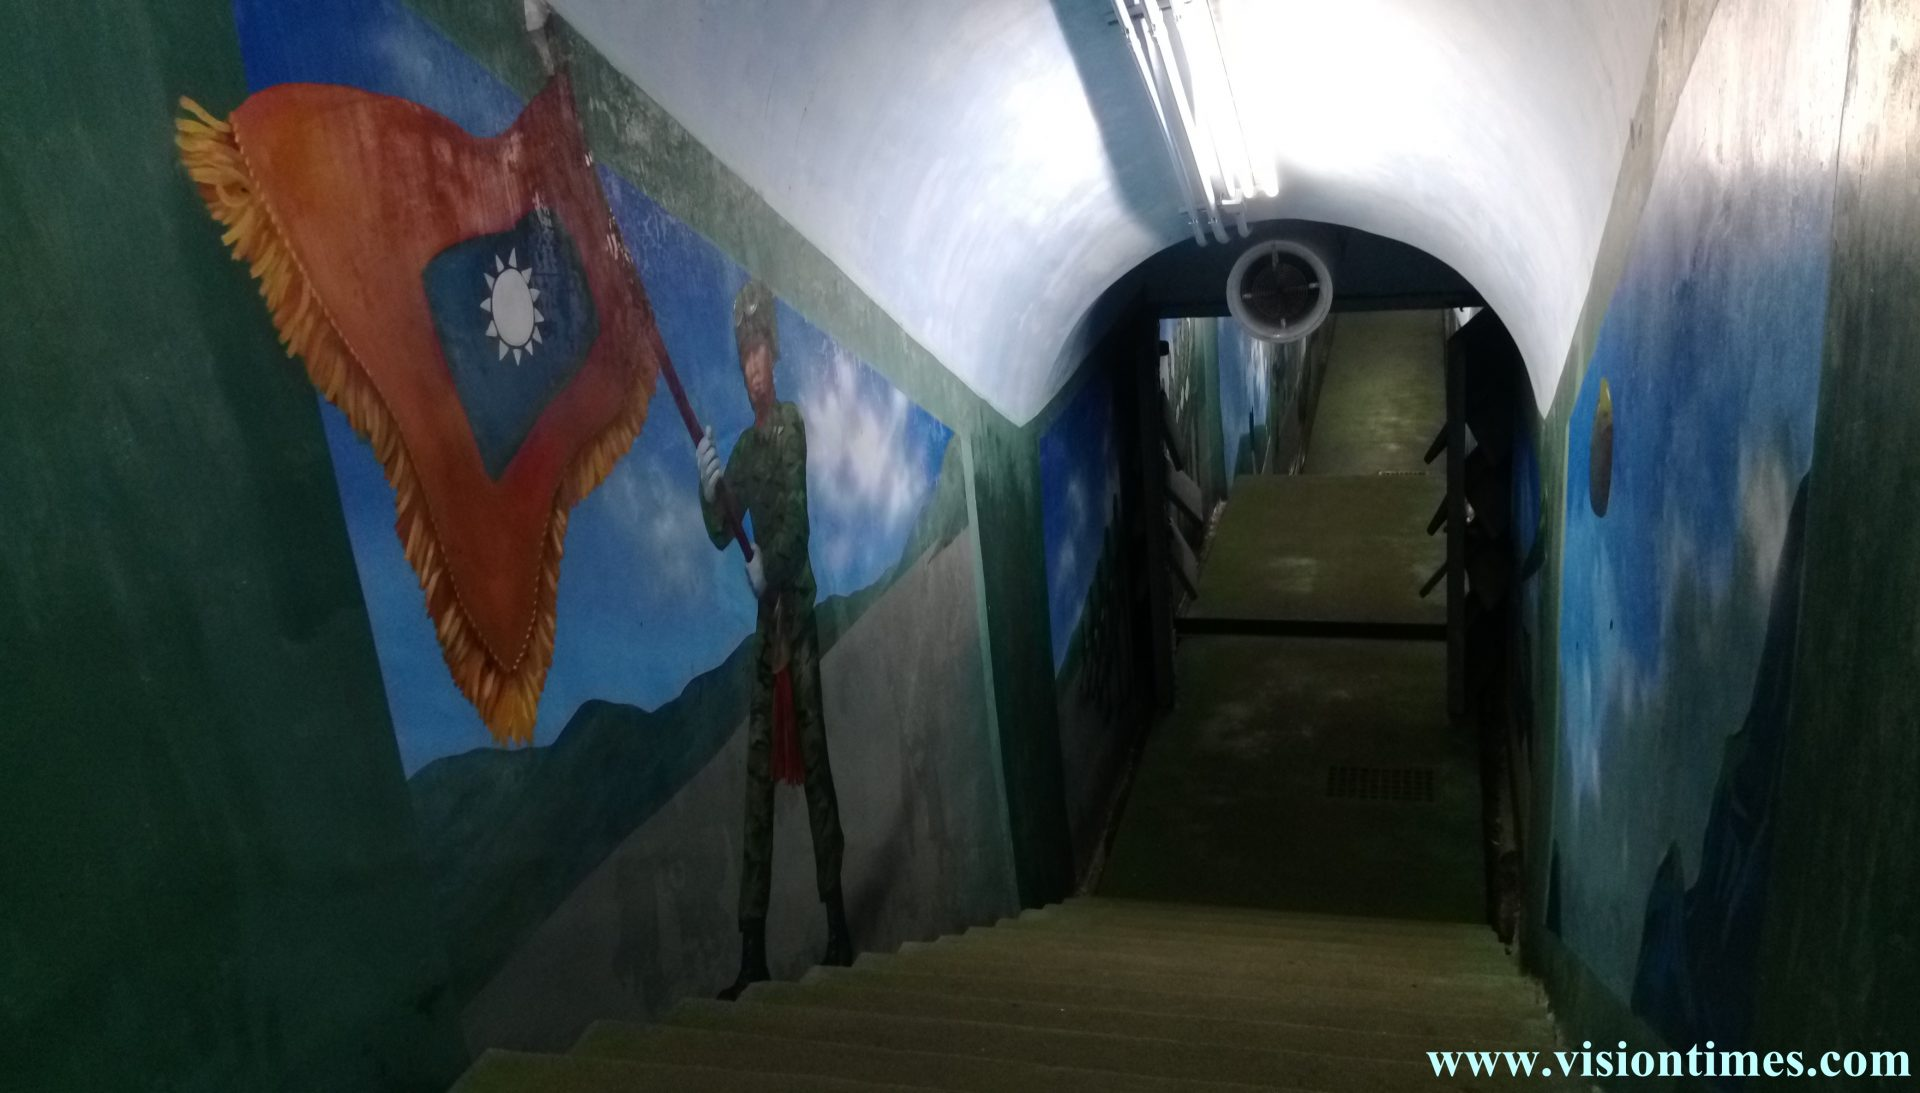 Next to Jiabanshan Guesthouse., a military tunnel was constructed to ensure Chiang Kai-shek's safety and serve as a command post if war broke out, (Image: Billy Shyu / Vision Times